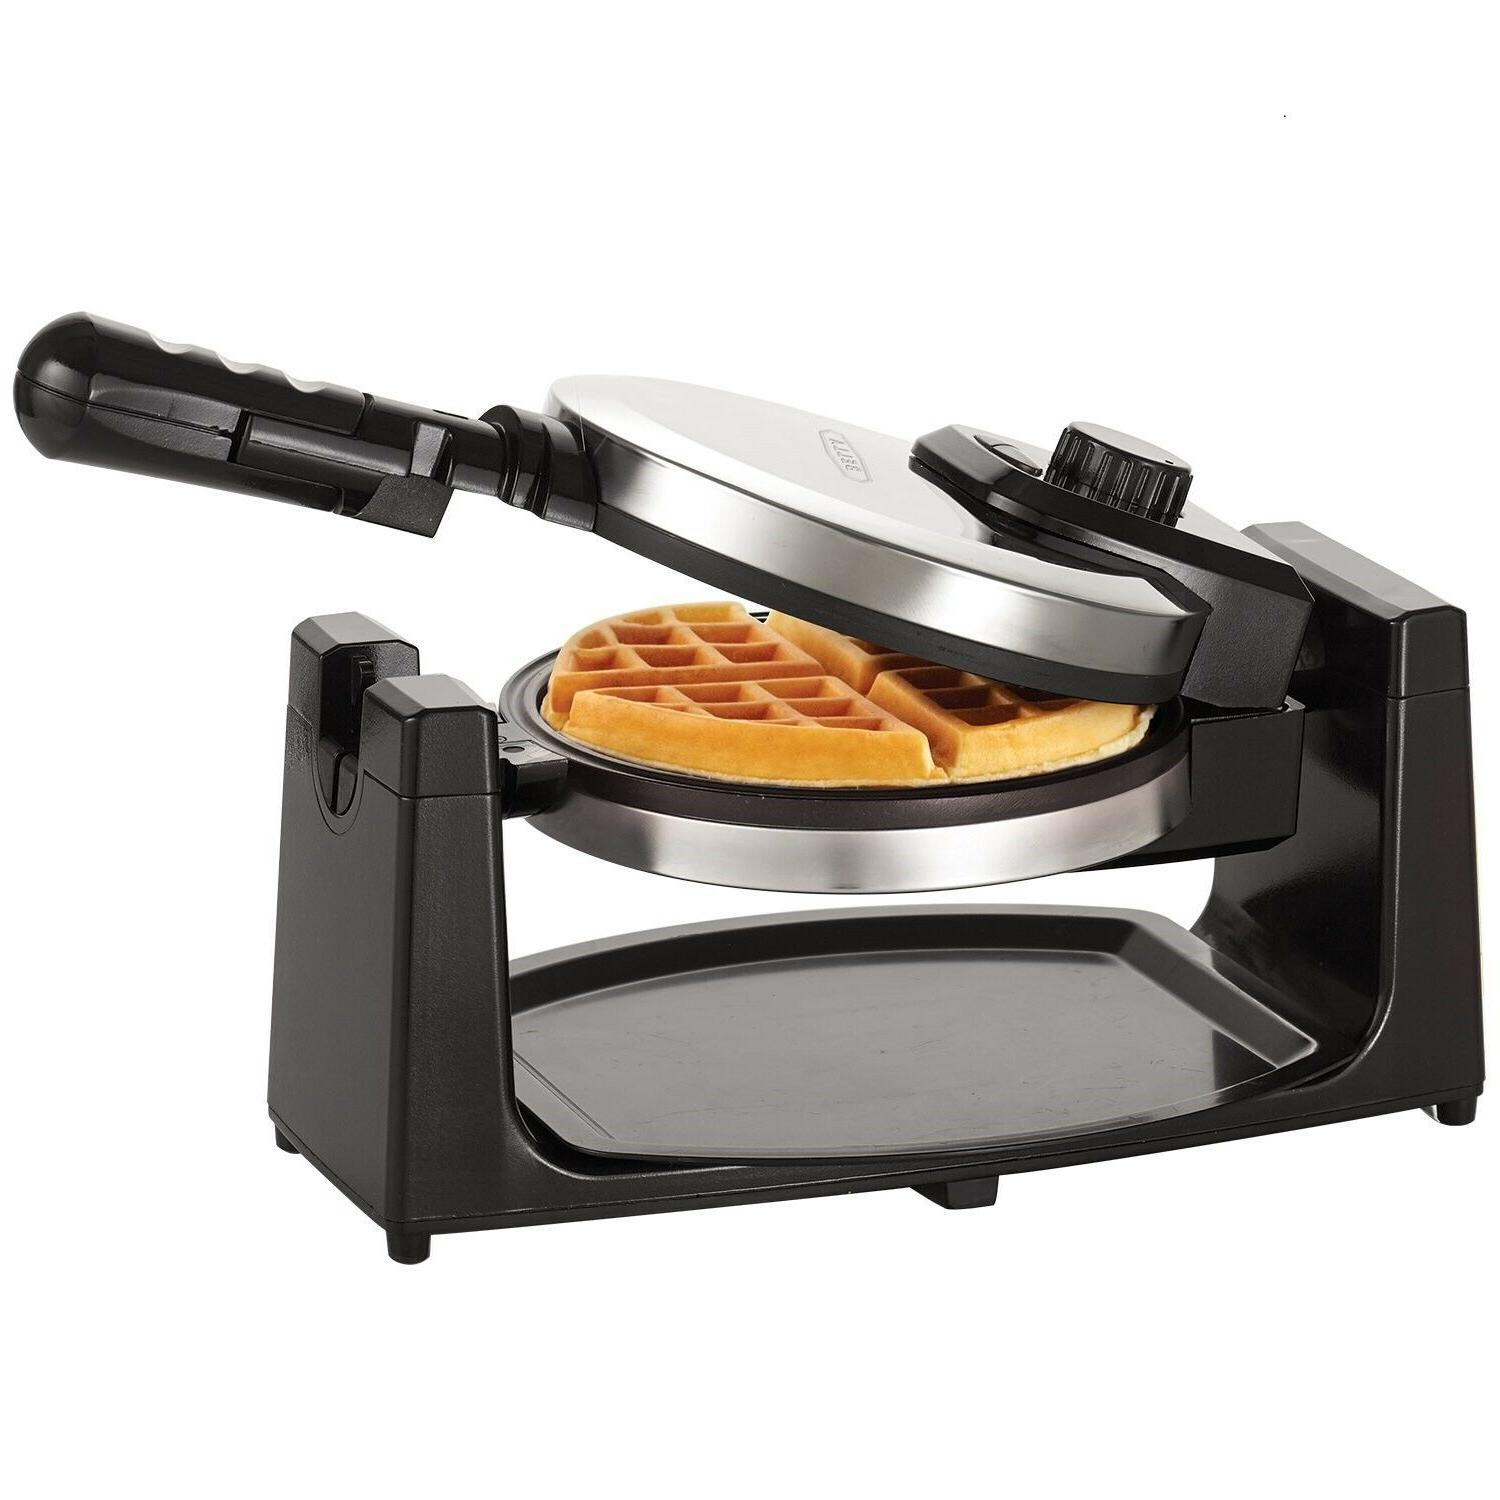 Ess Waffle Maker Kitchen Home Handle Removable Non-stick